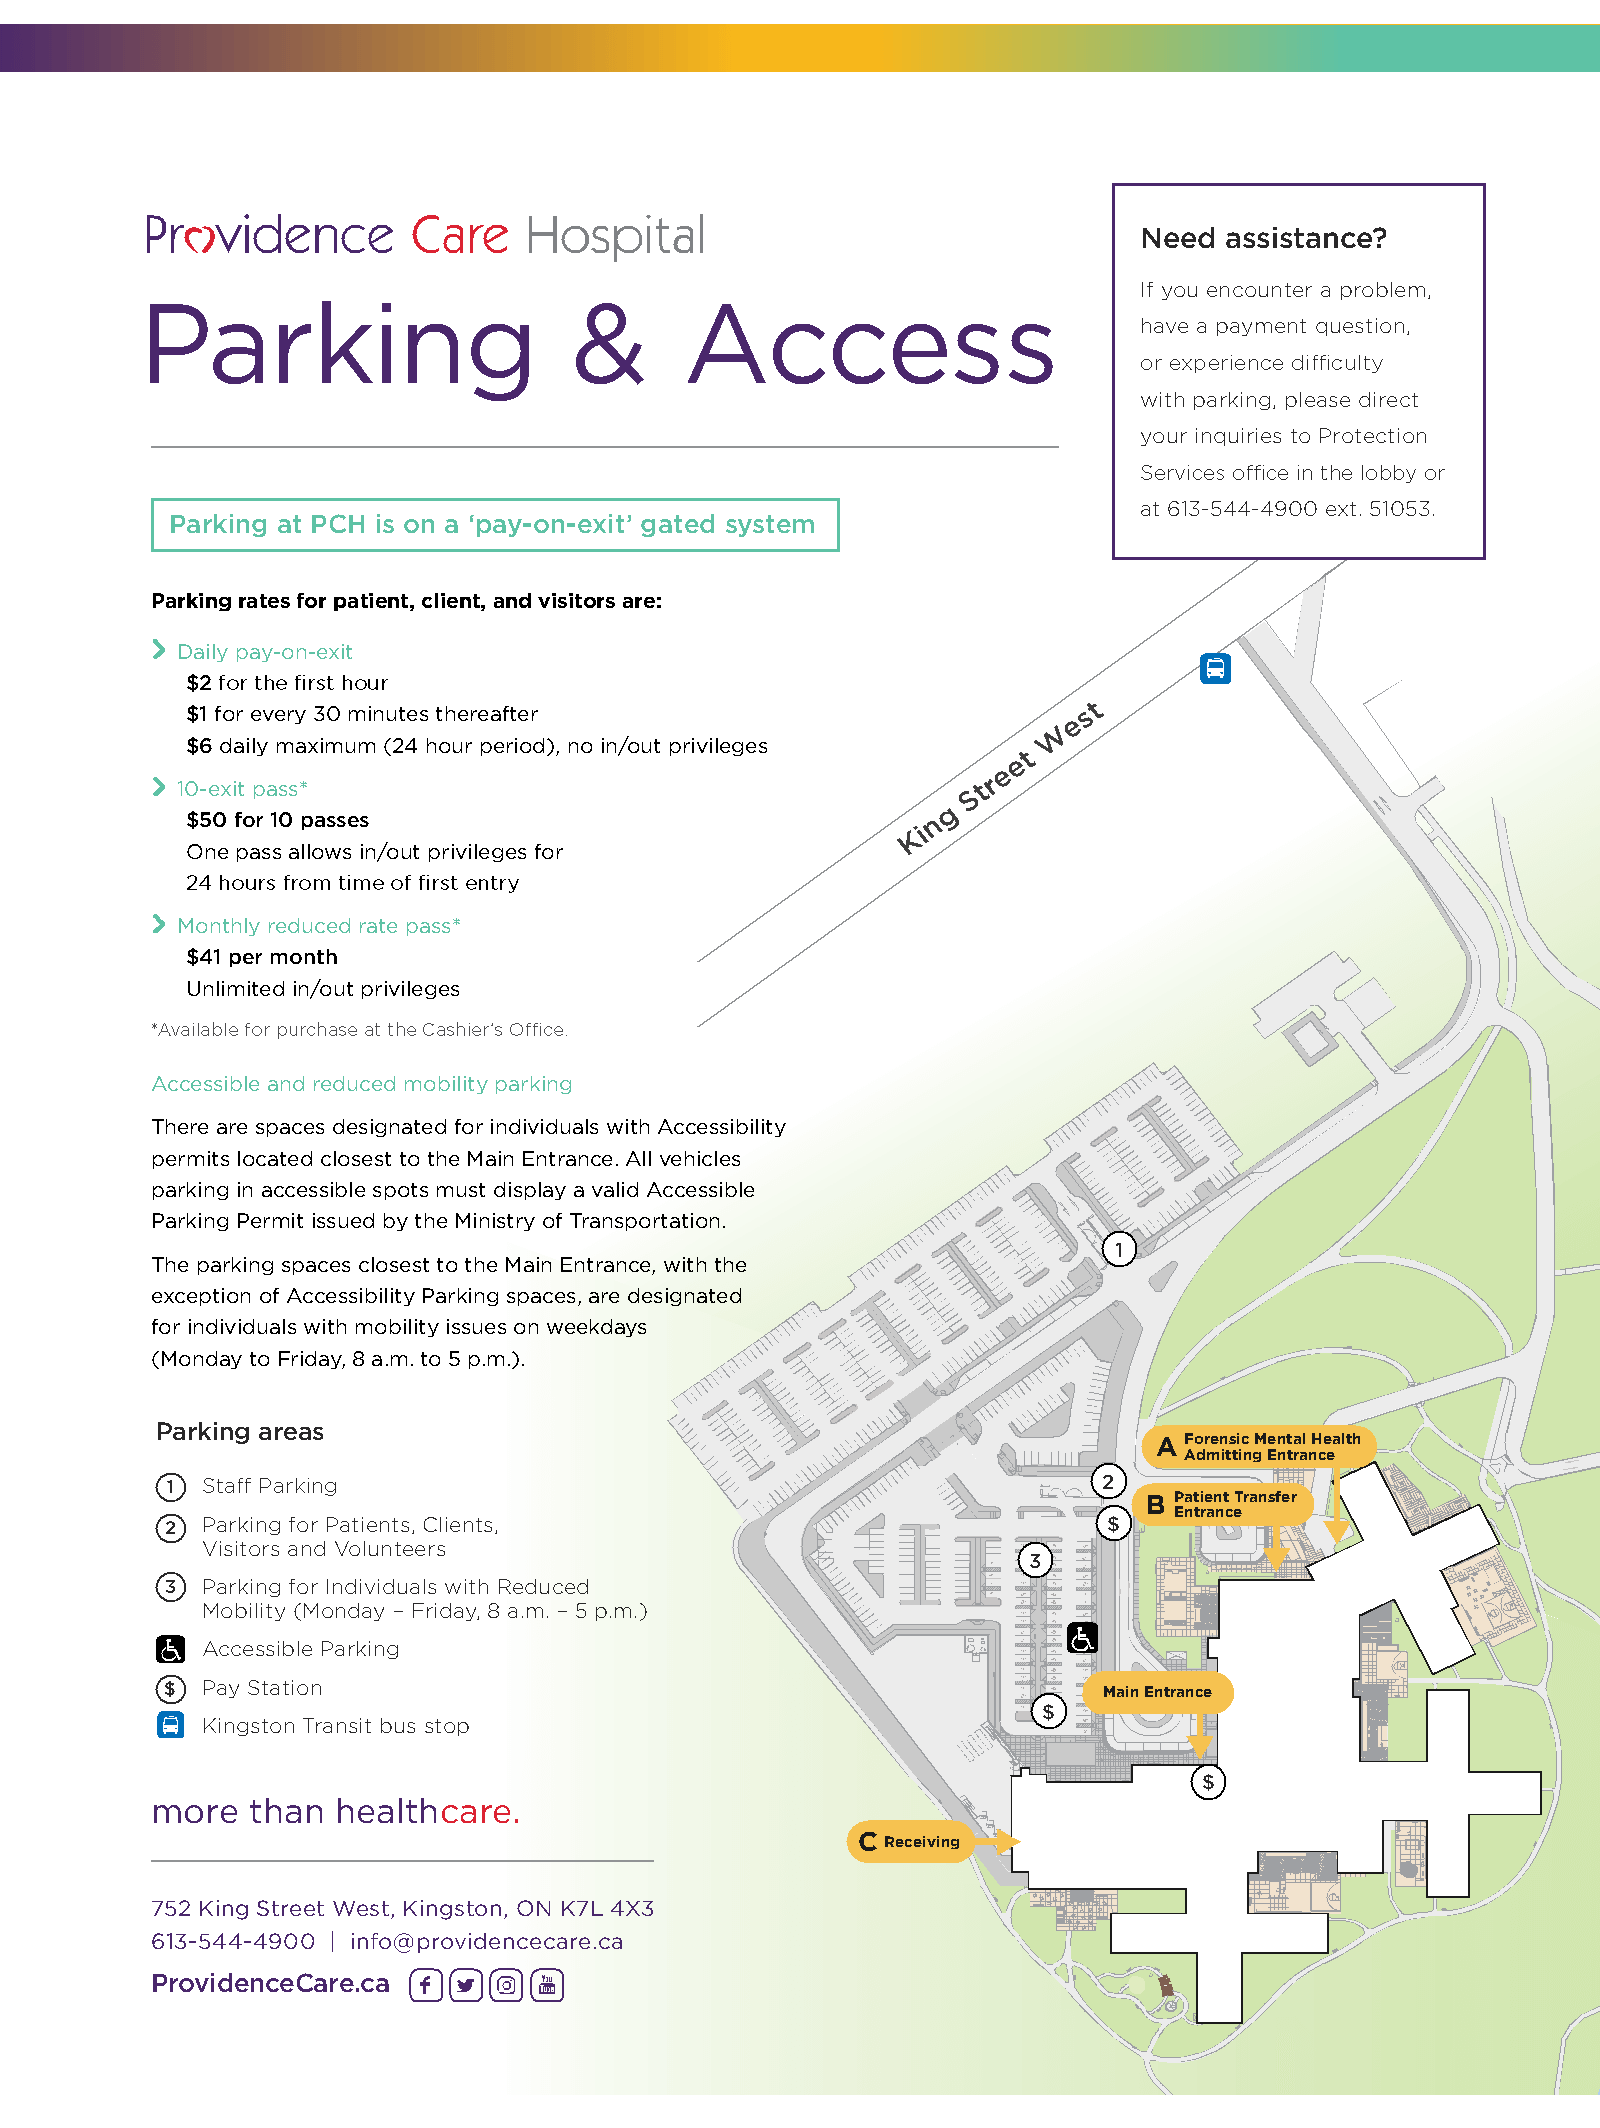 Parking at PCH - Providence Care